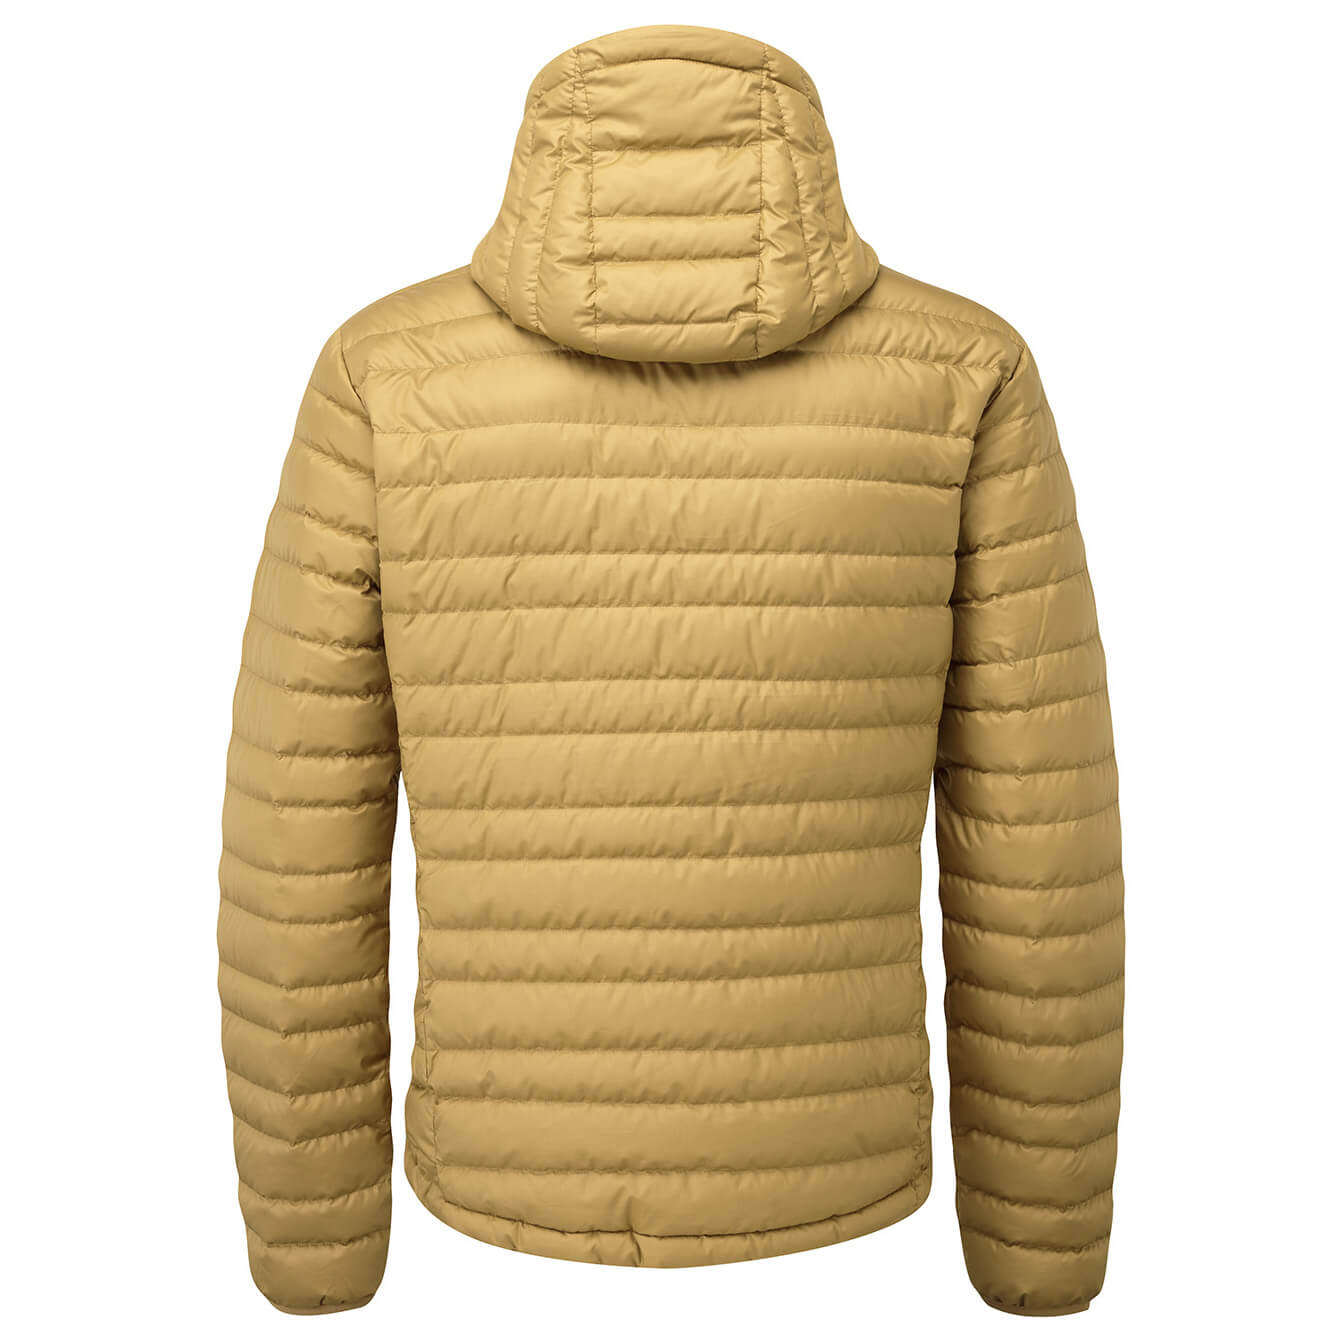 Sherpa Nangpala Hooded Jacket - Down jacket Men's | Buy ...